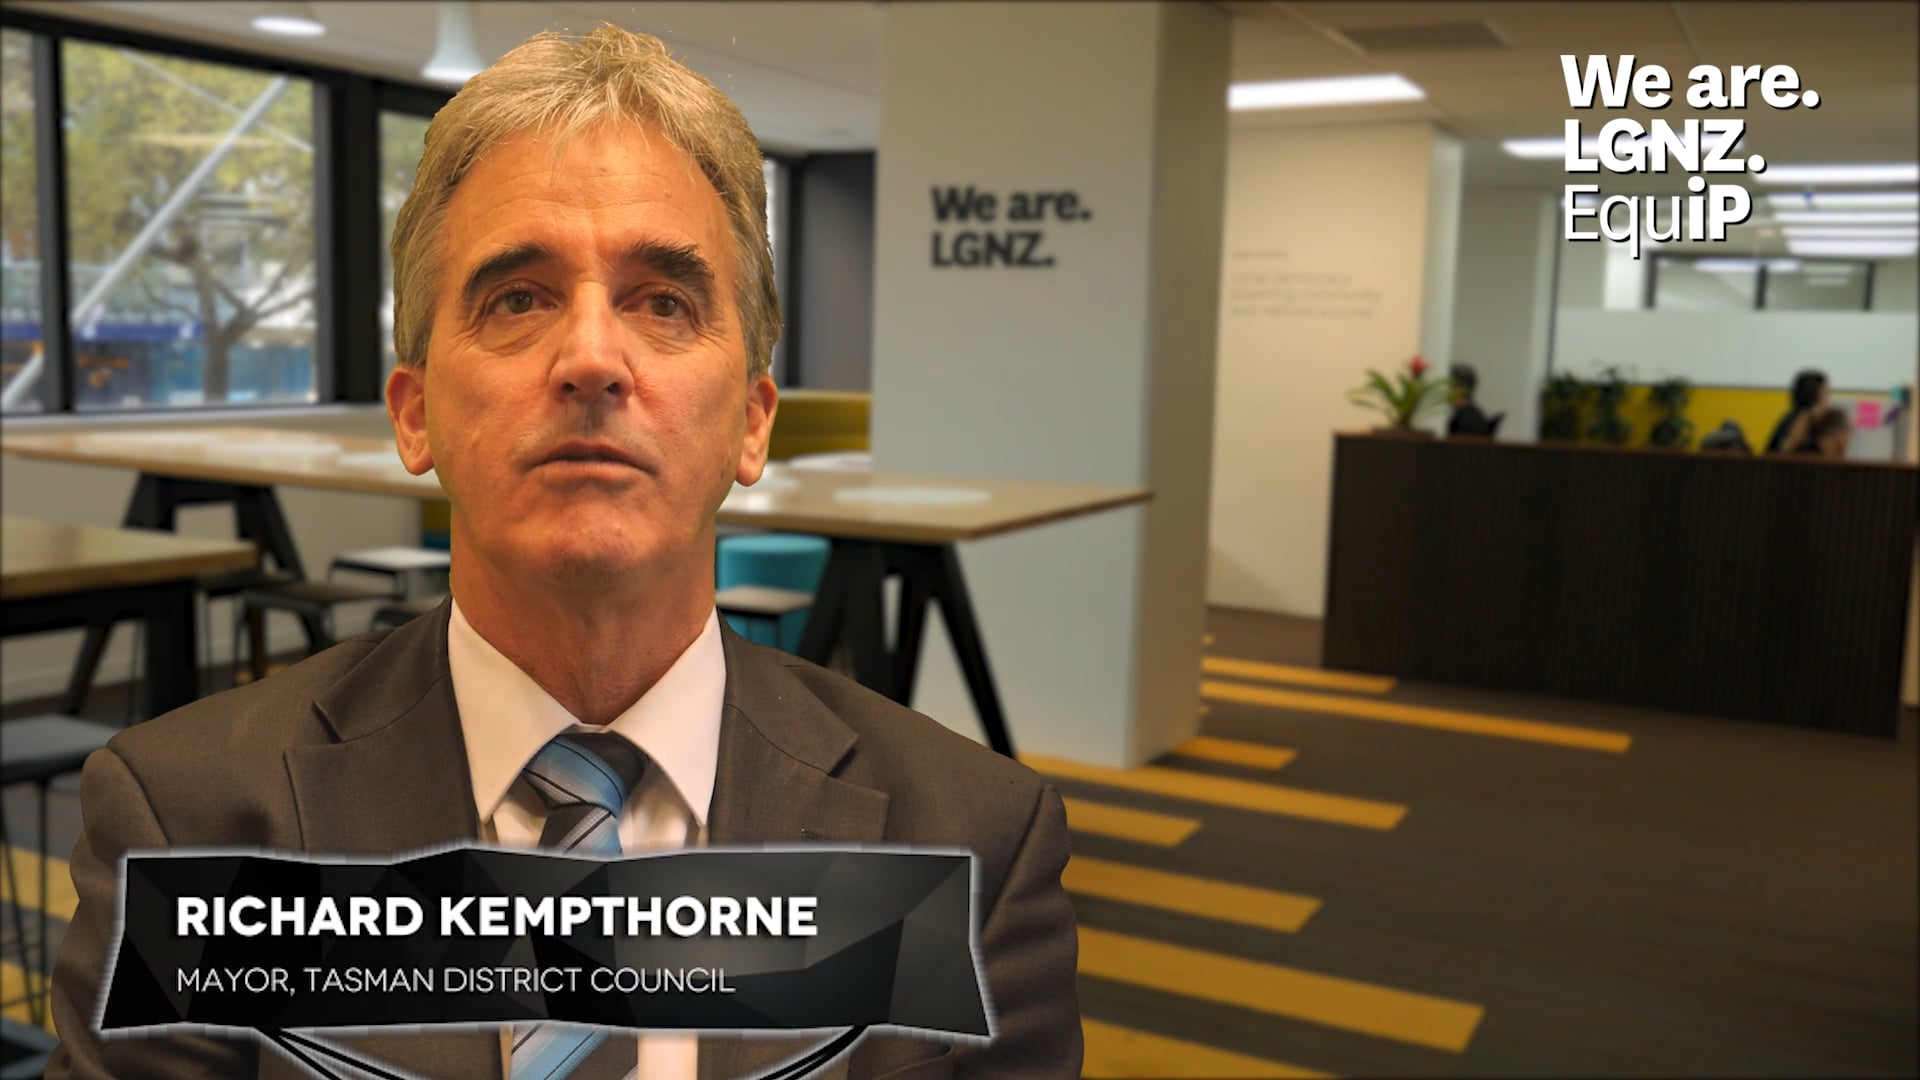 What are the benefits of professional development for elected members - Richard Kempthorne